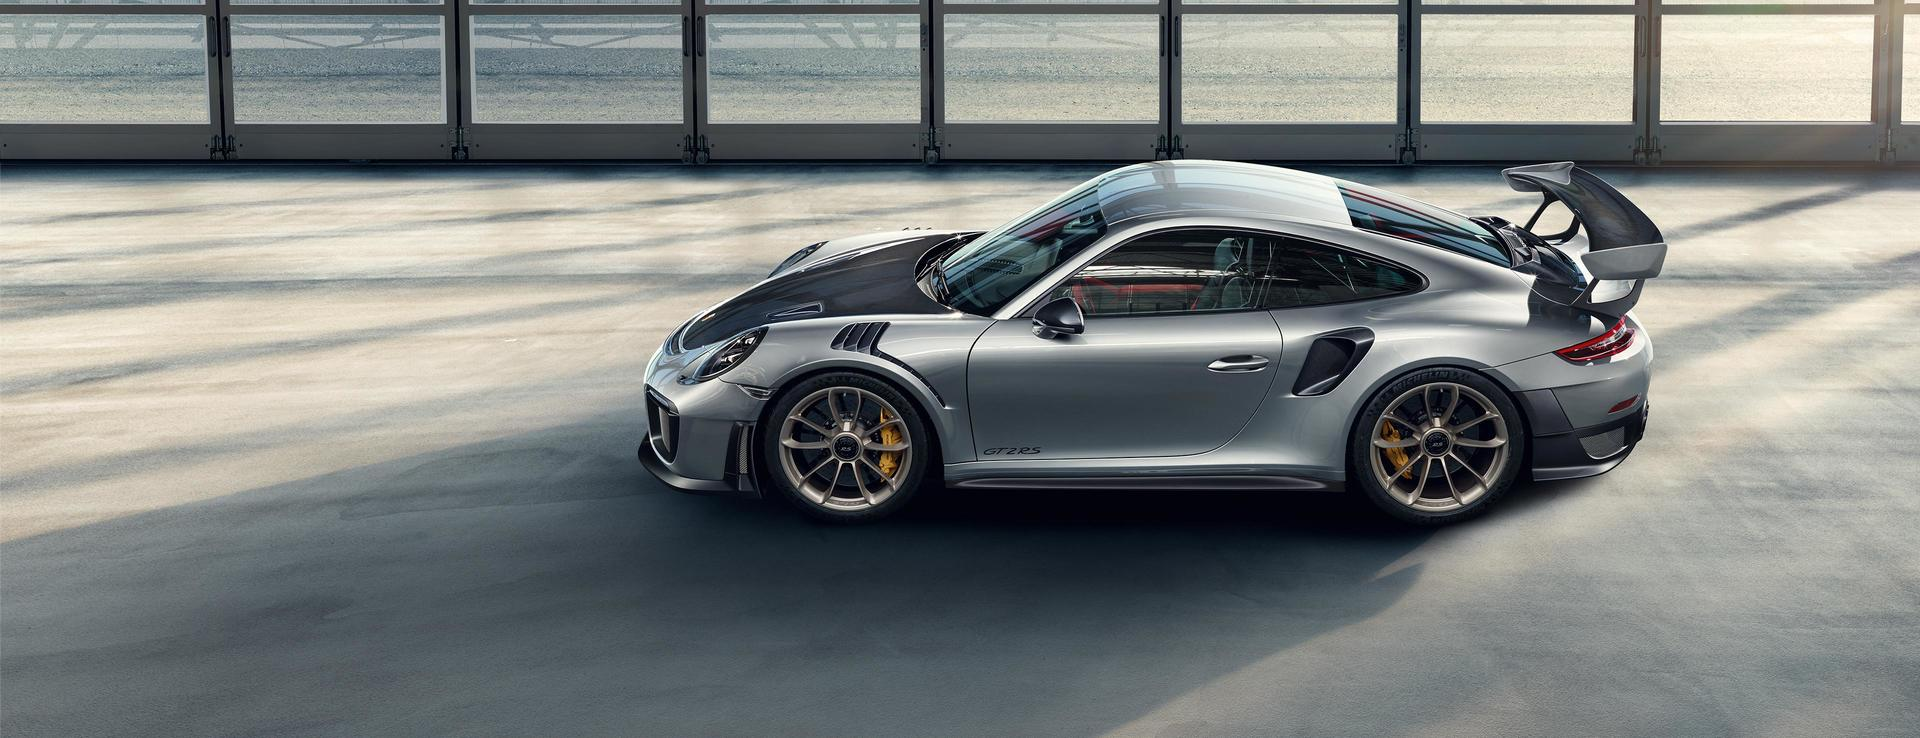 <p>The Porsche 911 GT2RS has been launched in India at a starting price of Rs 3.88 crore ex-showroom</p>